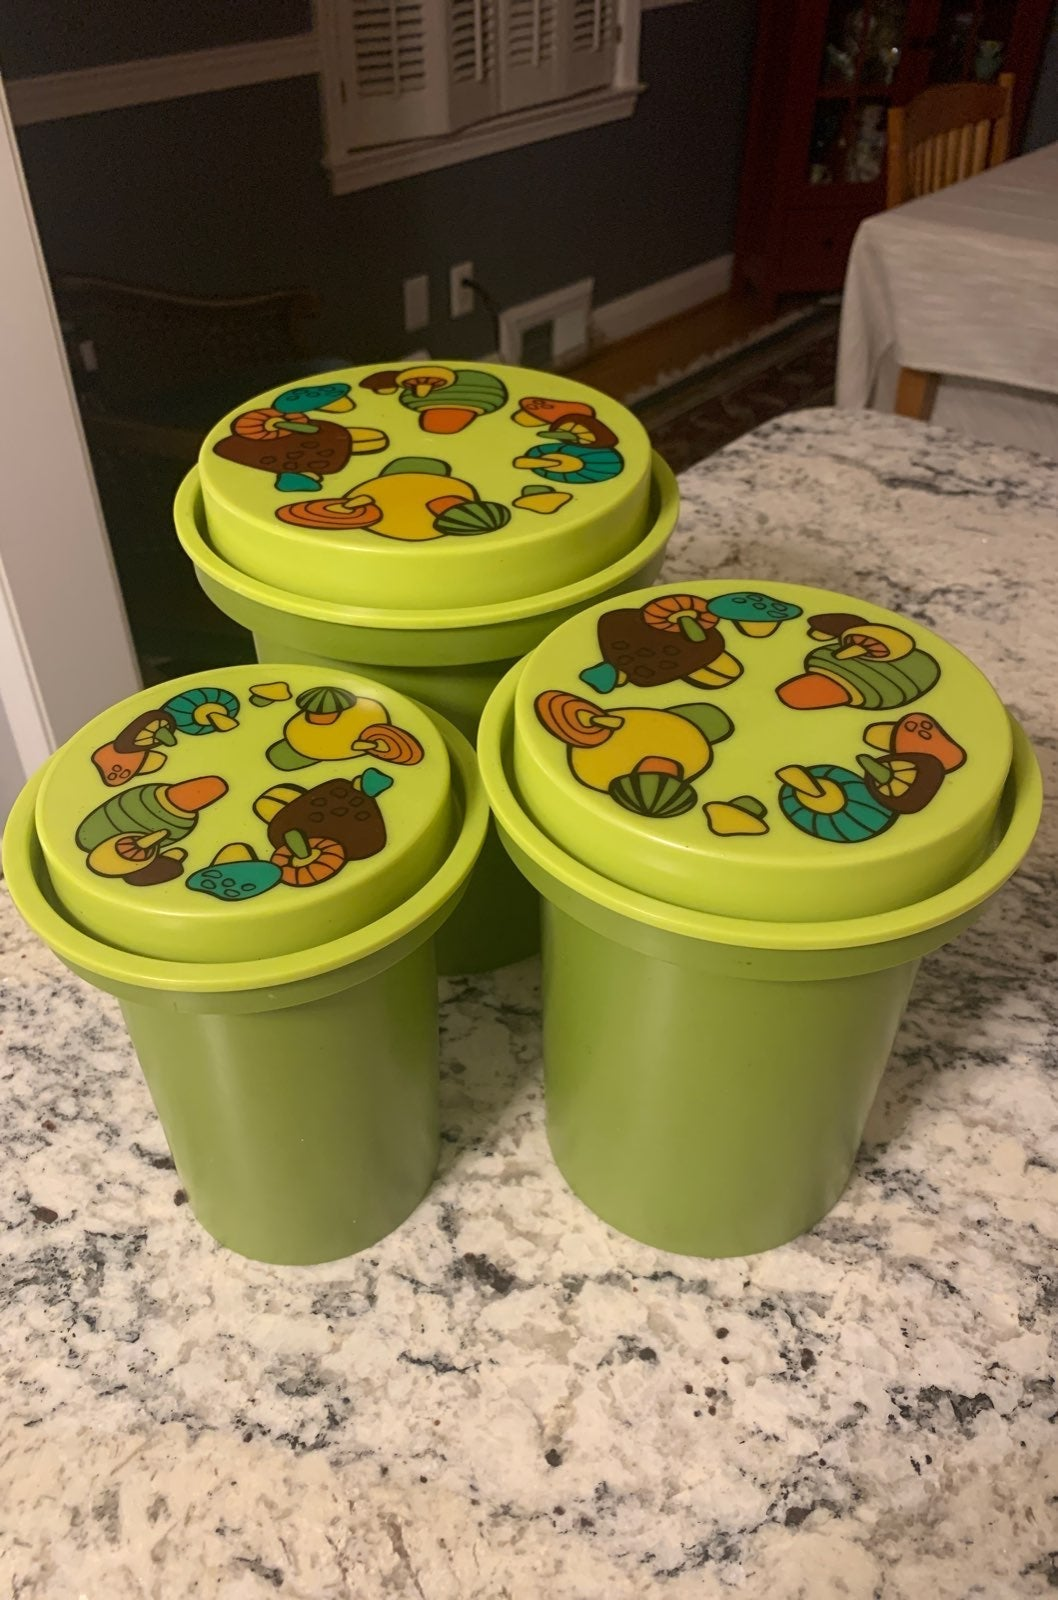 Vintage rubbermaid containers